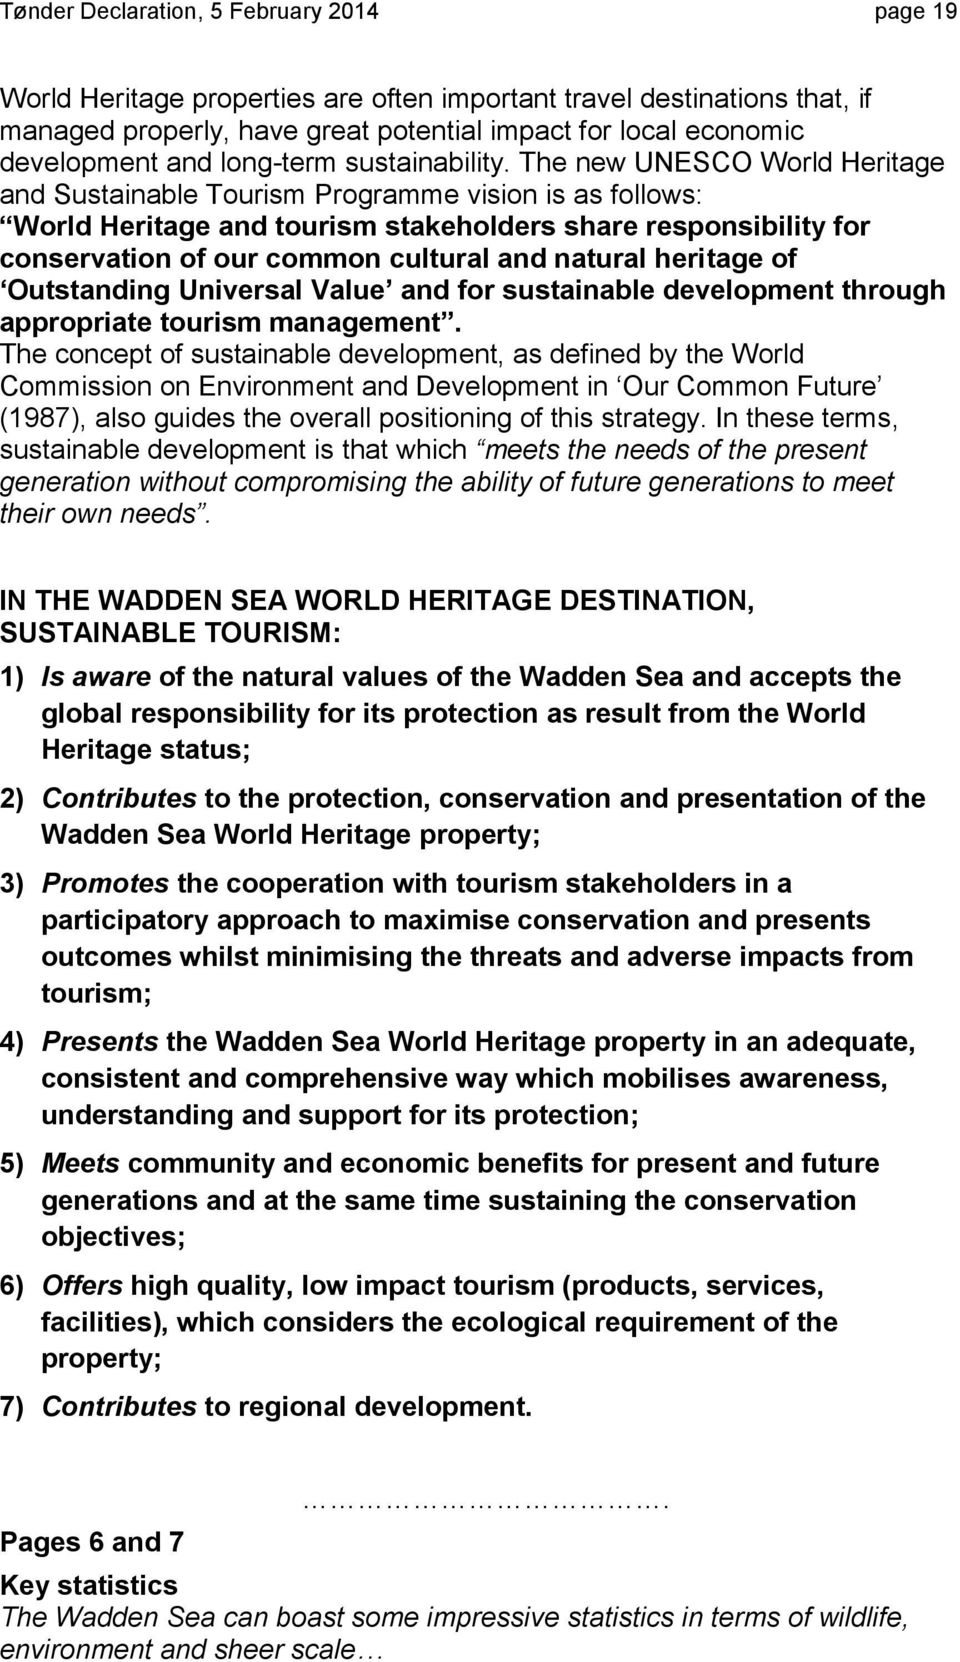 The new UNESCO World Heritage and Sustainable Tourism Programme vision is as follows: World Heritage and tourism stakeholders share responsibility for conservation of our common cultural and natural